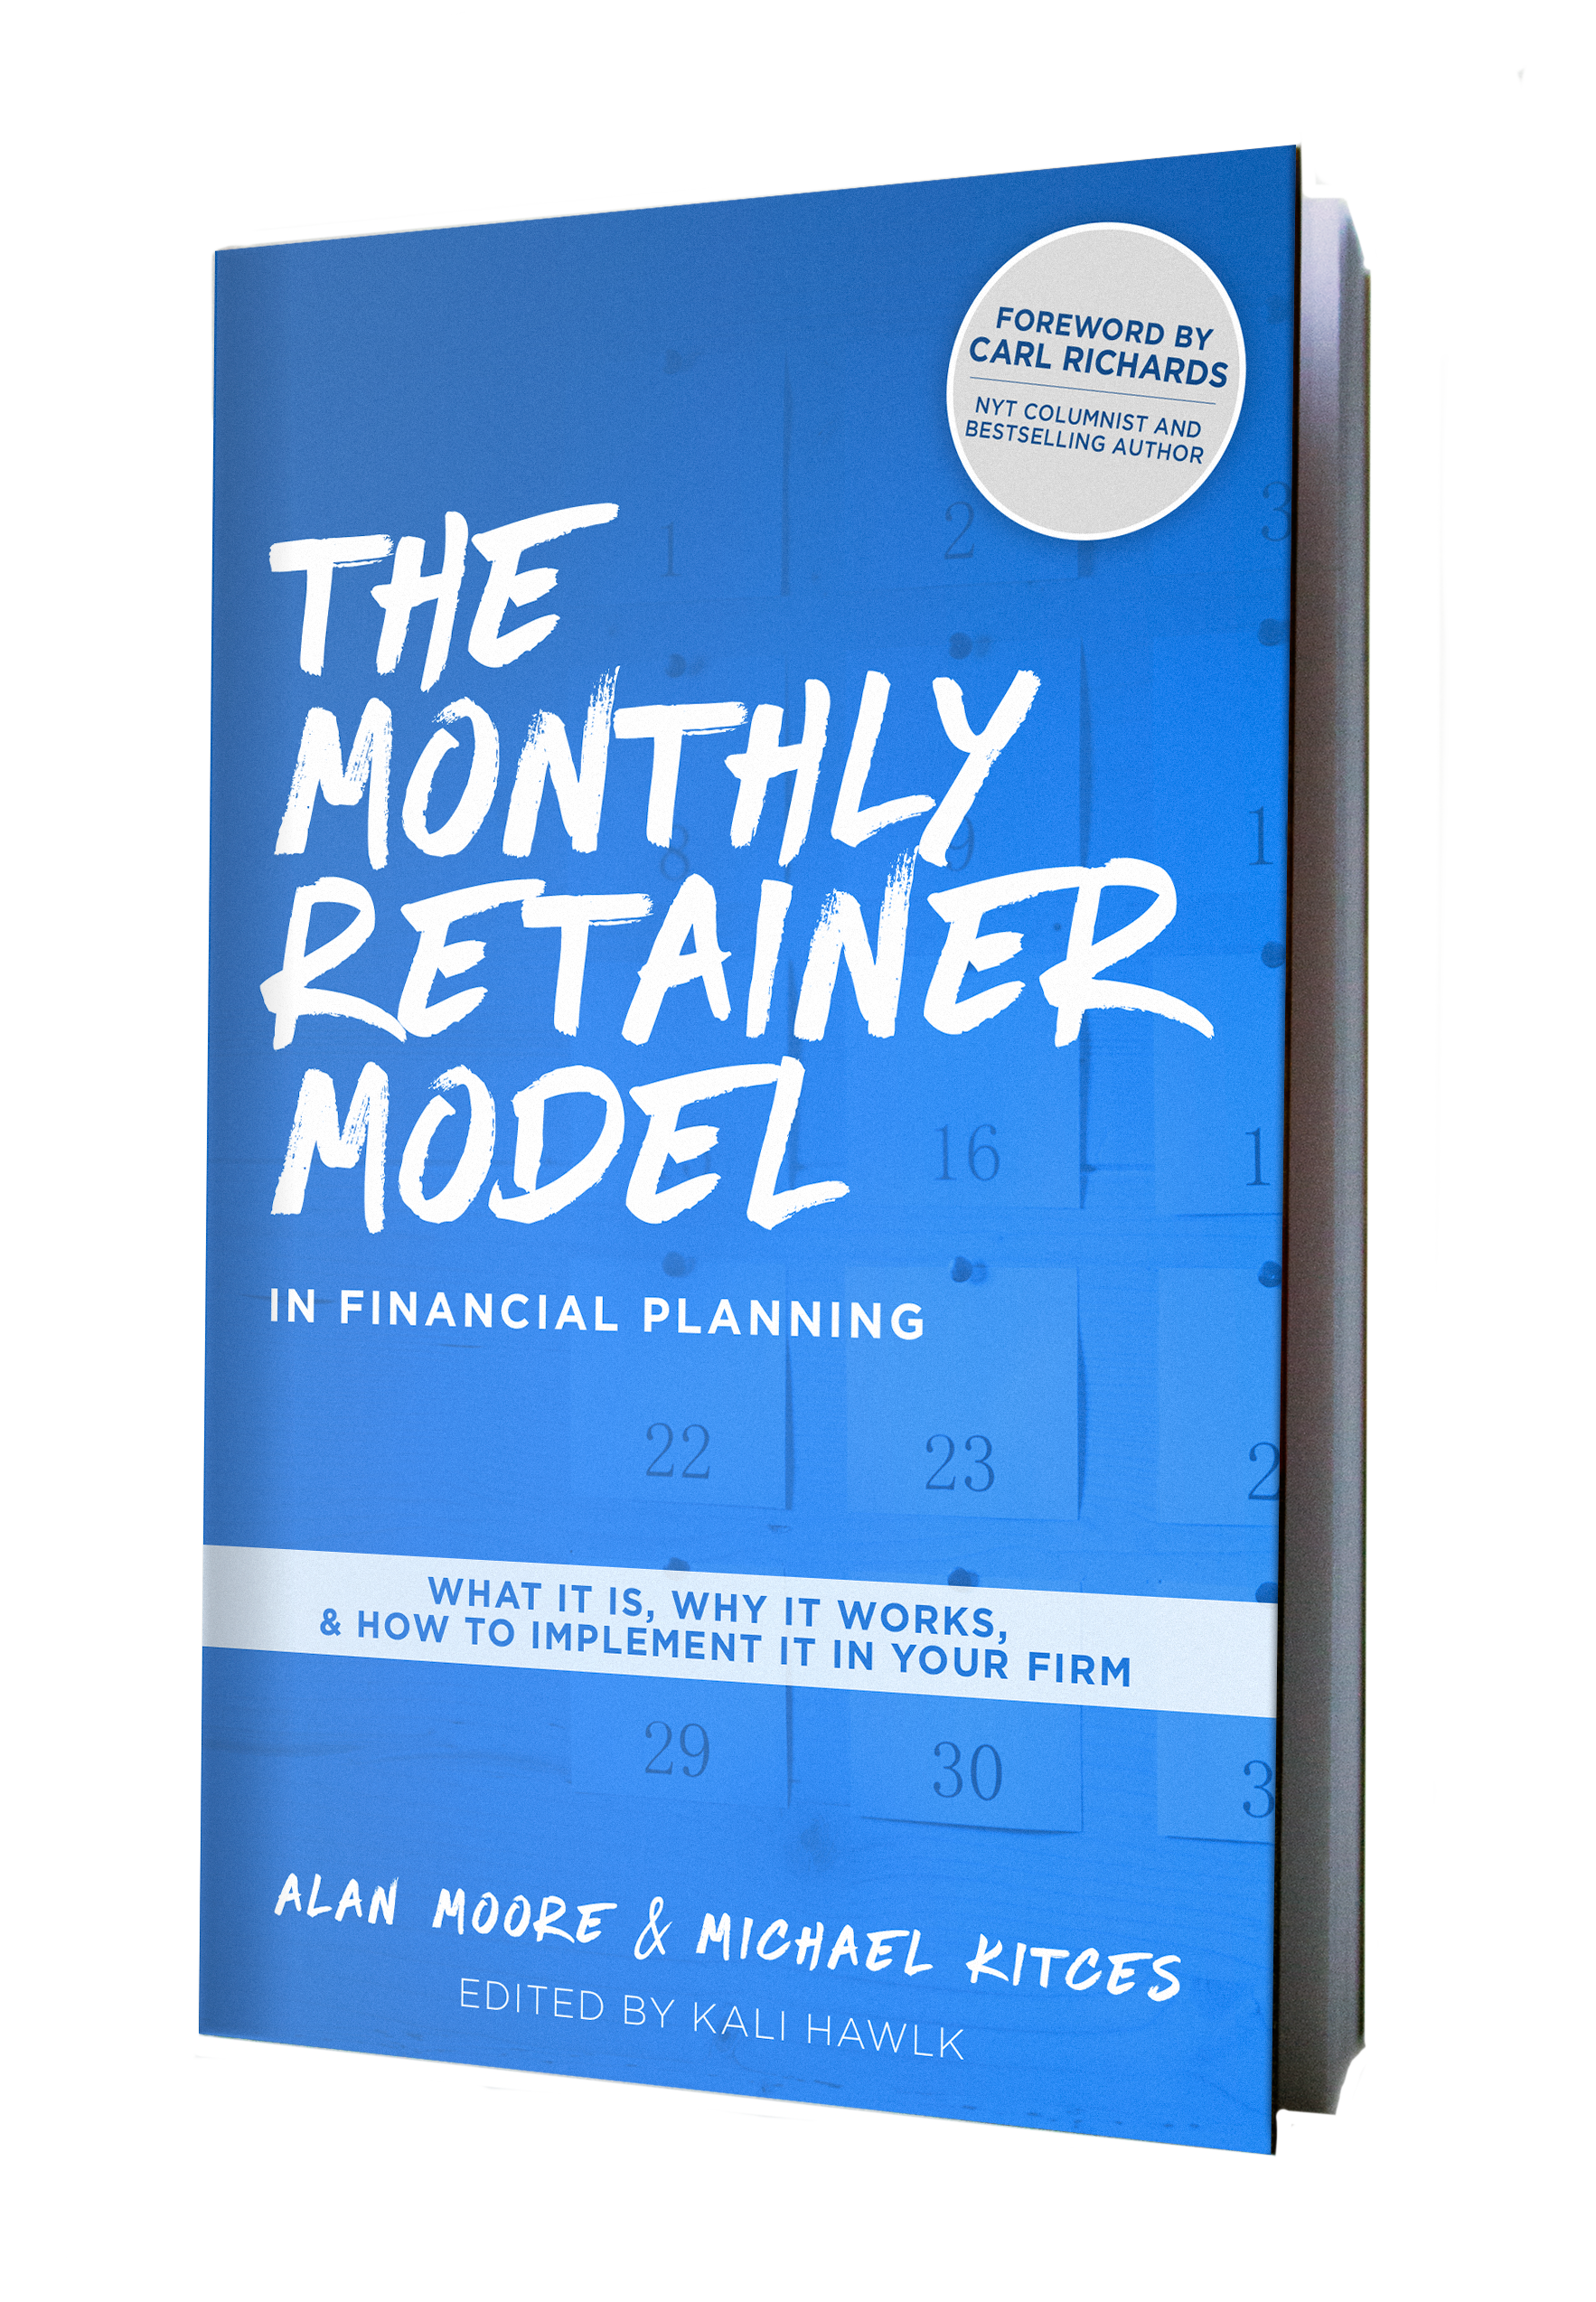 XY Planning Network Book Cover Design by Finicky Designs